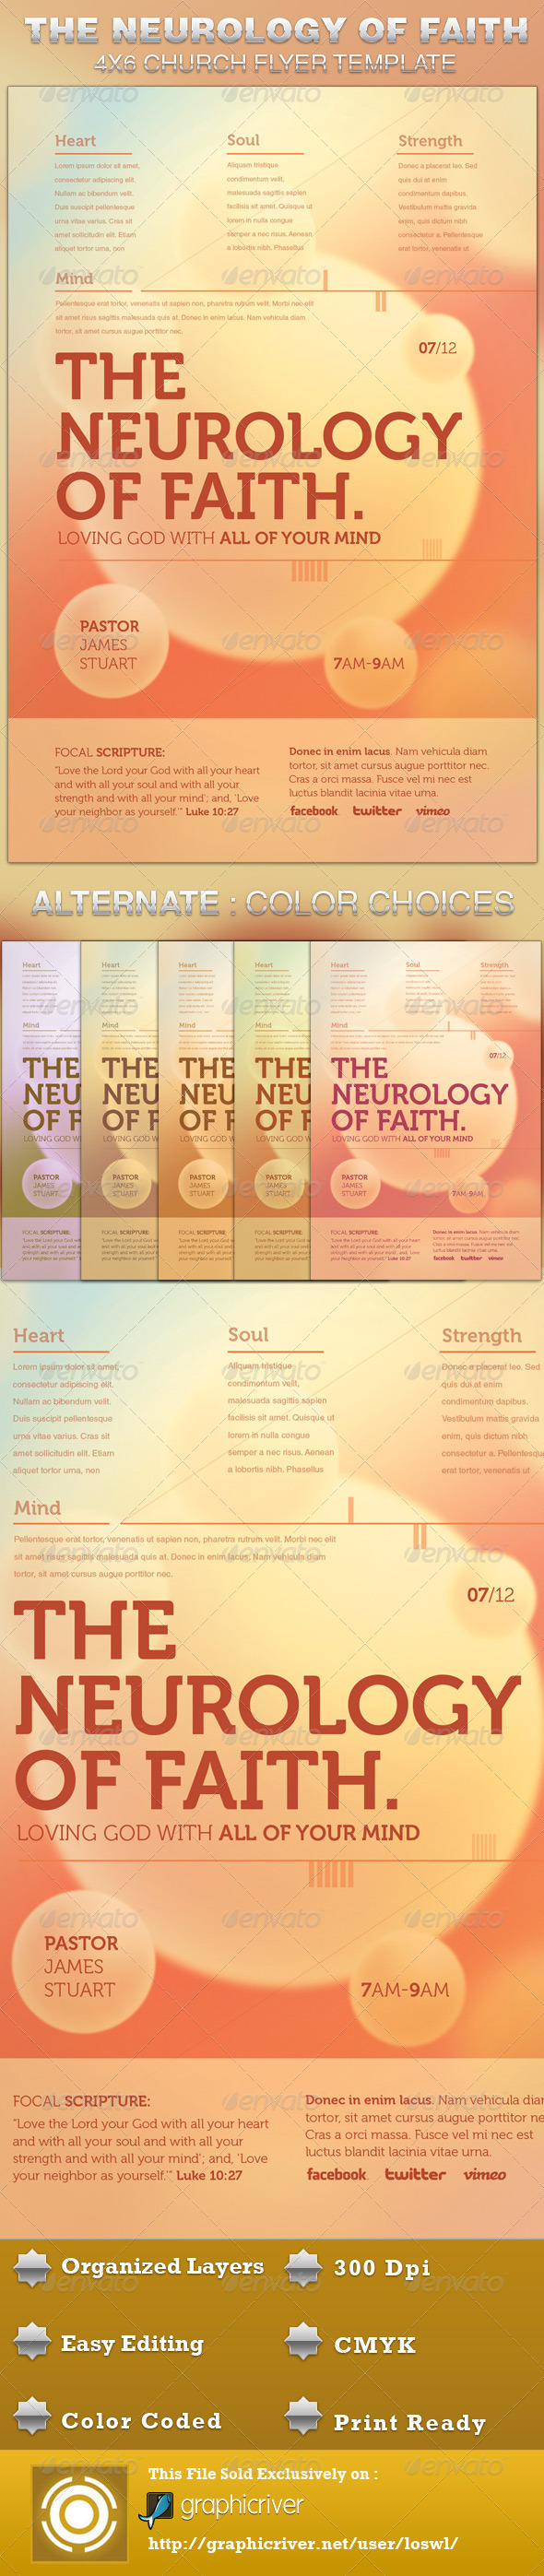 The Neurology of Faith Church Flyer Template - Church Flyers